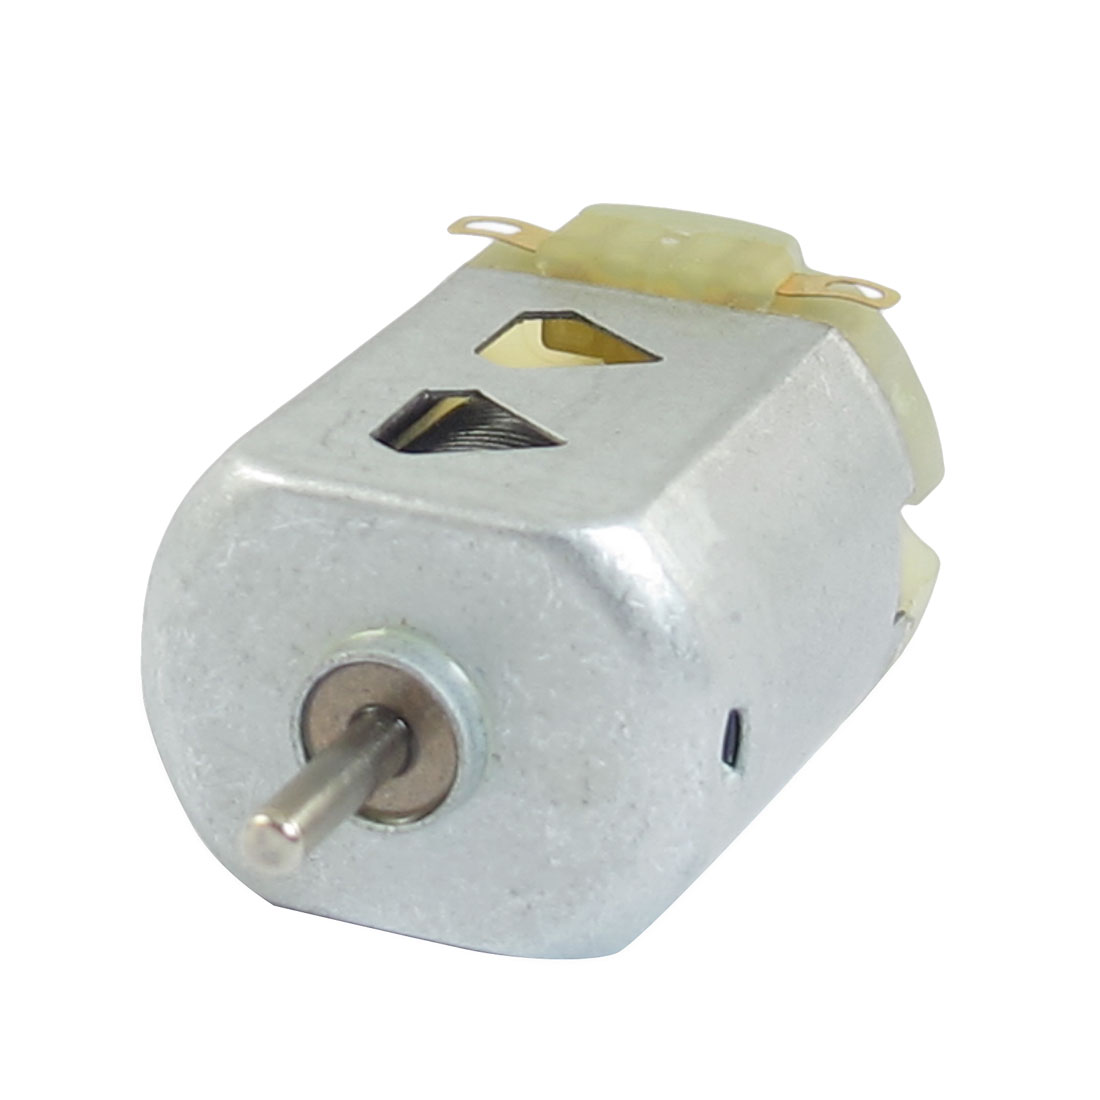 DC 1.5V 400mA 9000RPM 2 Terminals Flat Motor 130 for DIY